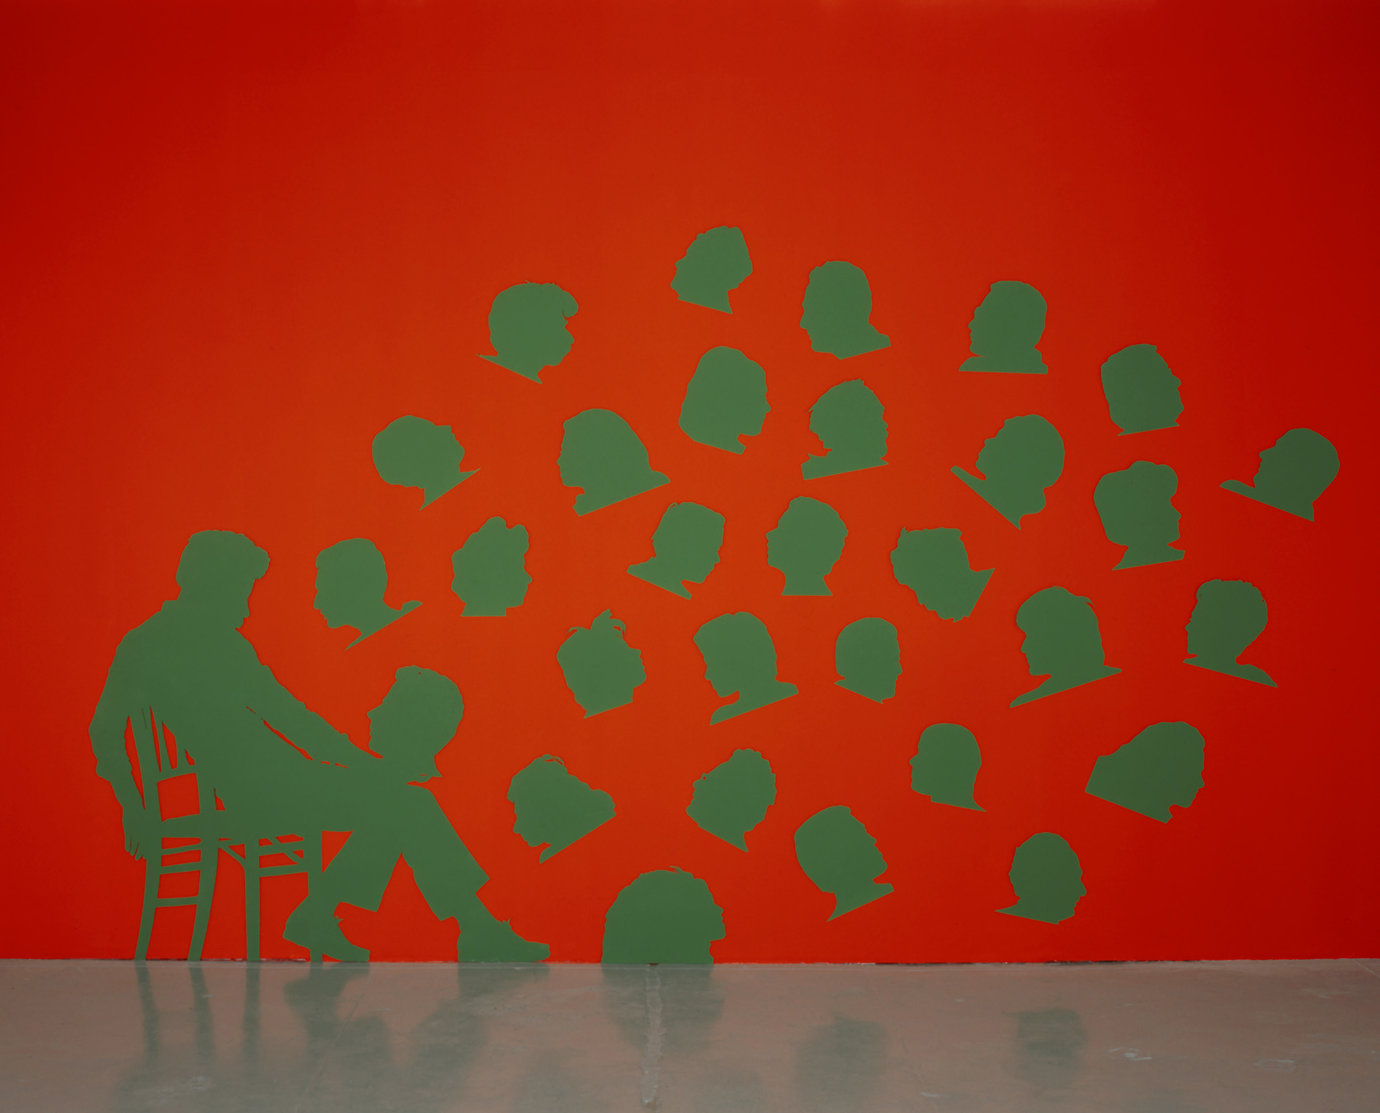 ", 1975. Painted aluminum, 10' 10"" x 8' 4"" (330.2 x 254 cm), overall; 29 heads, 1 seated figure."